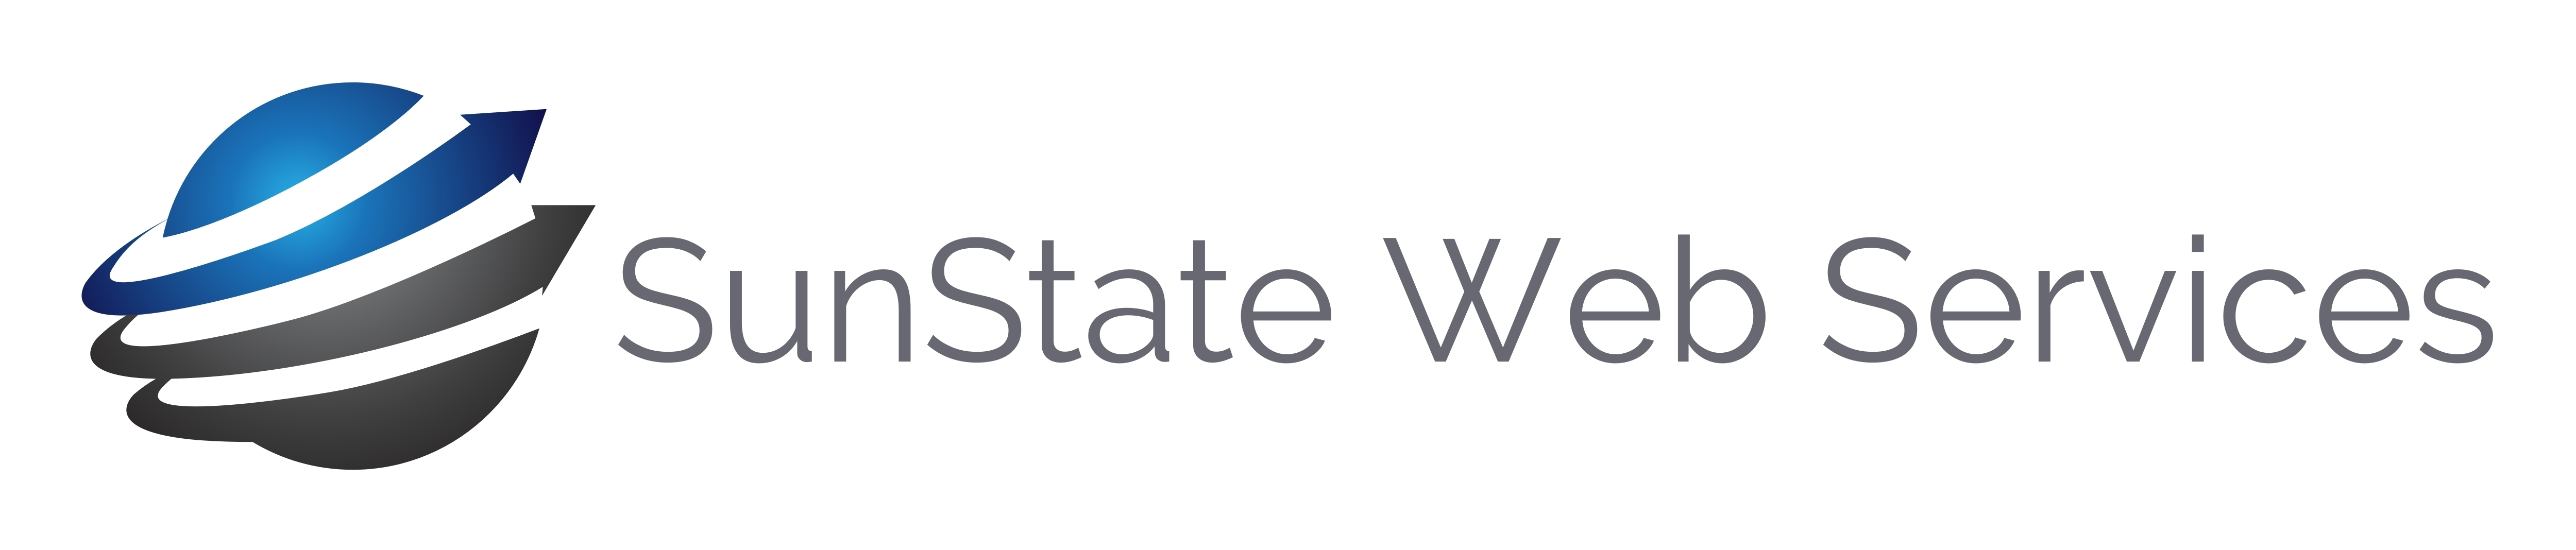 SunState Web Services